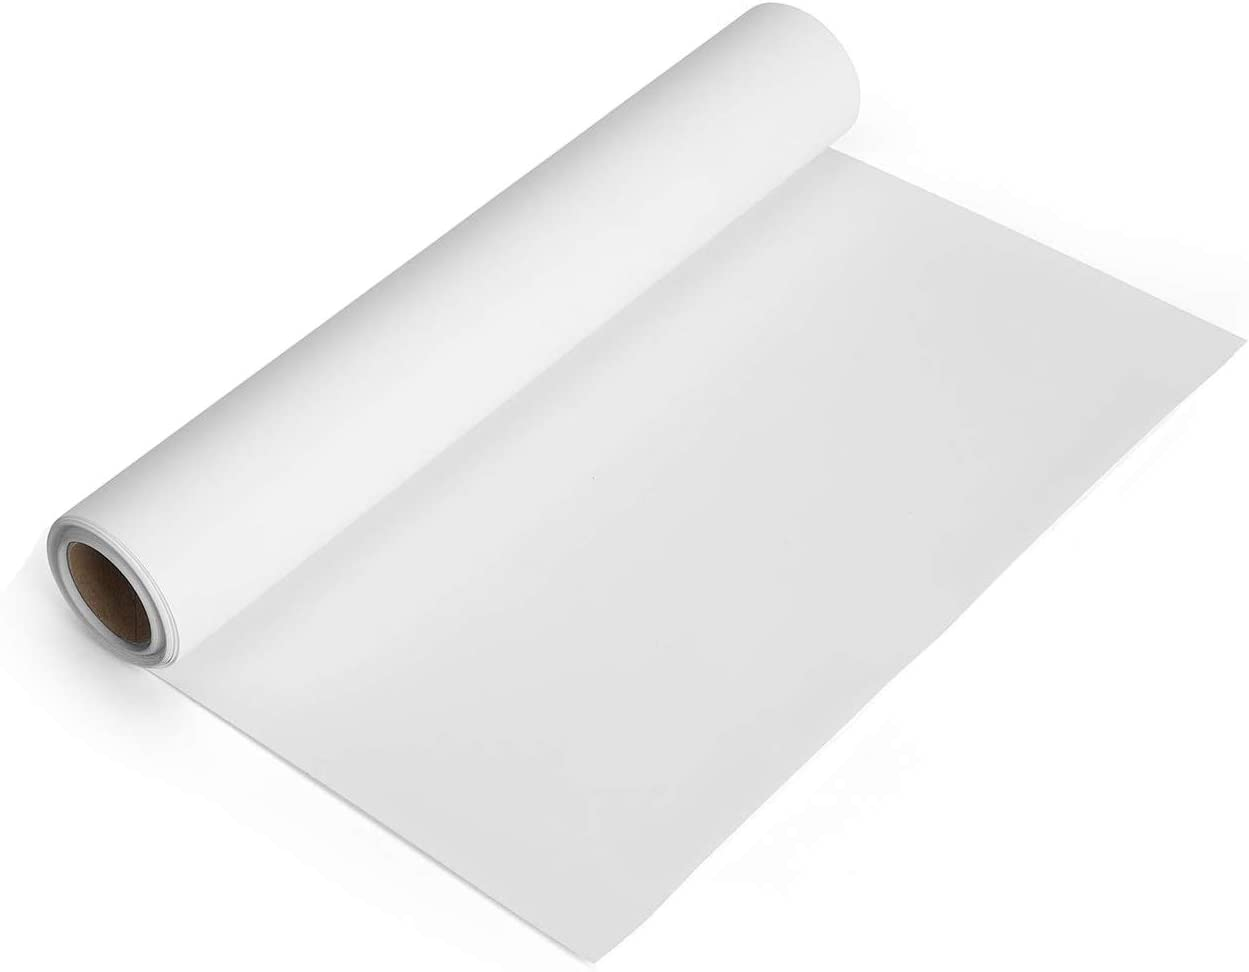 White Heat Transfer Vinyl Roll 12''x5' Iron-On Vinyl White HTV Vinyl for T-Shirt Silhouette Cameo Machines Craft Cutters 12 Inches by 5 Feet: Kitchen & Dining